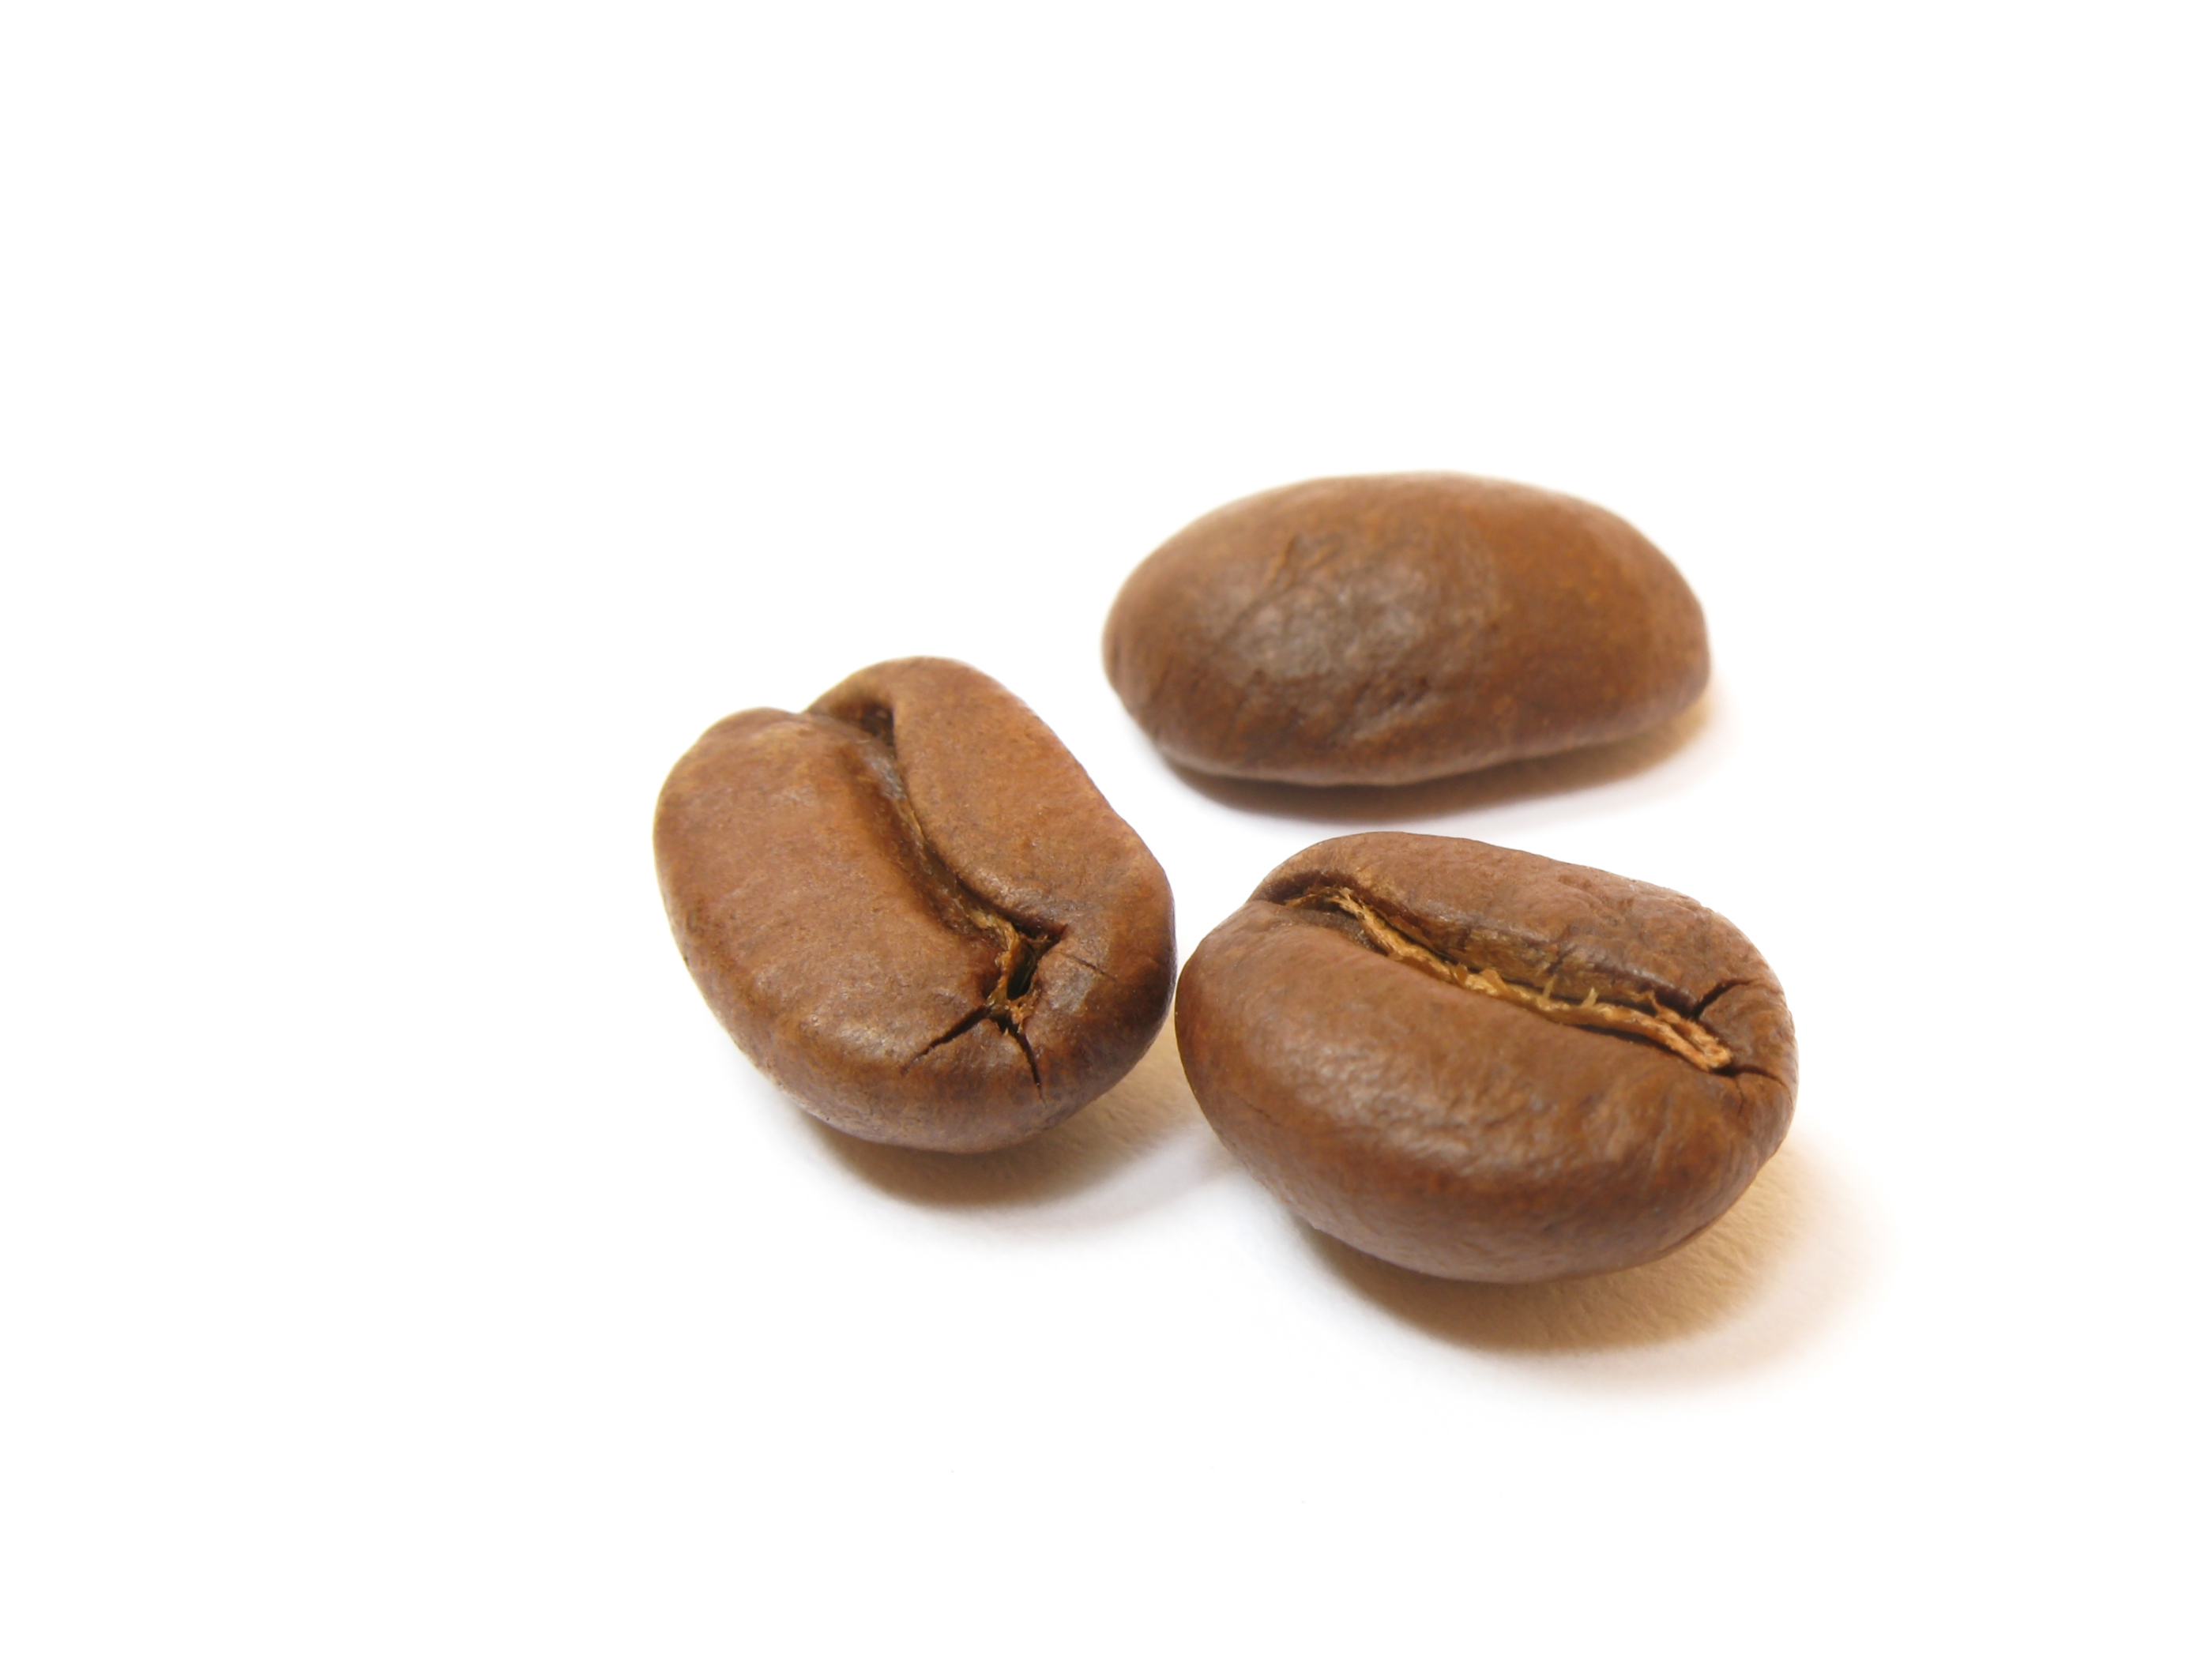 Are Coffee Beans And Espresso Beans The Same